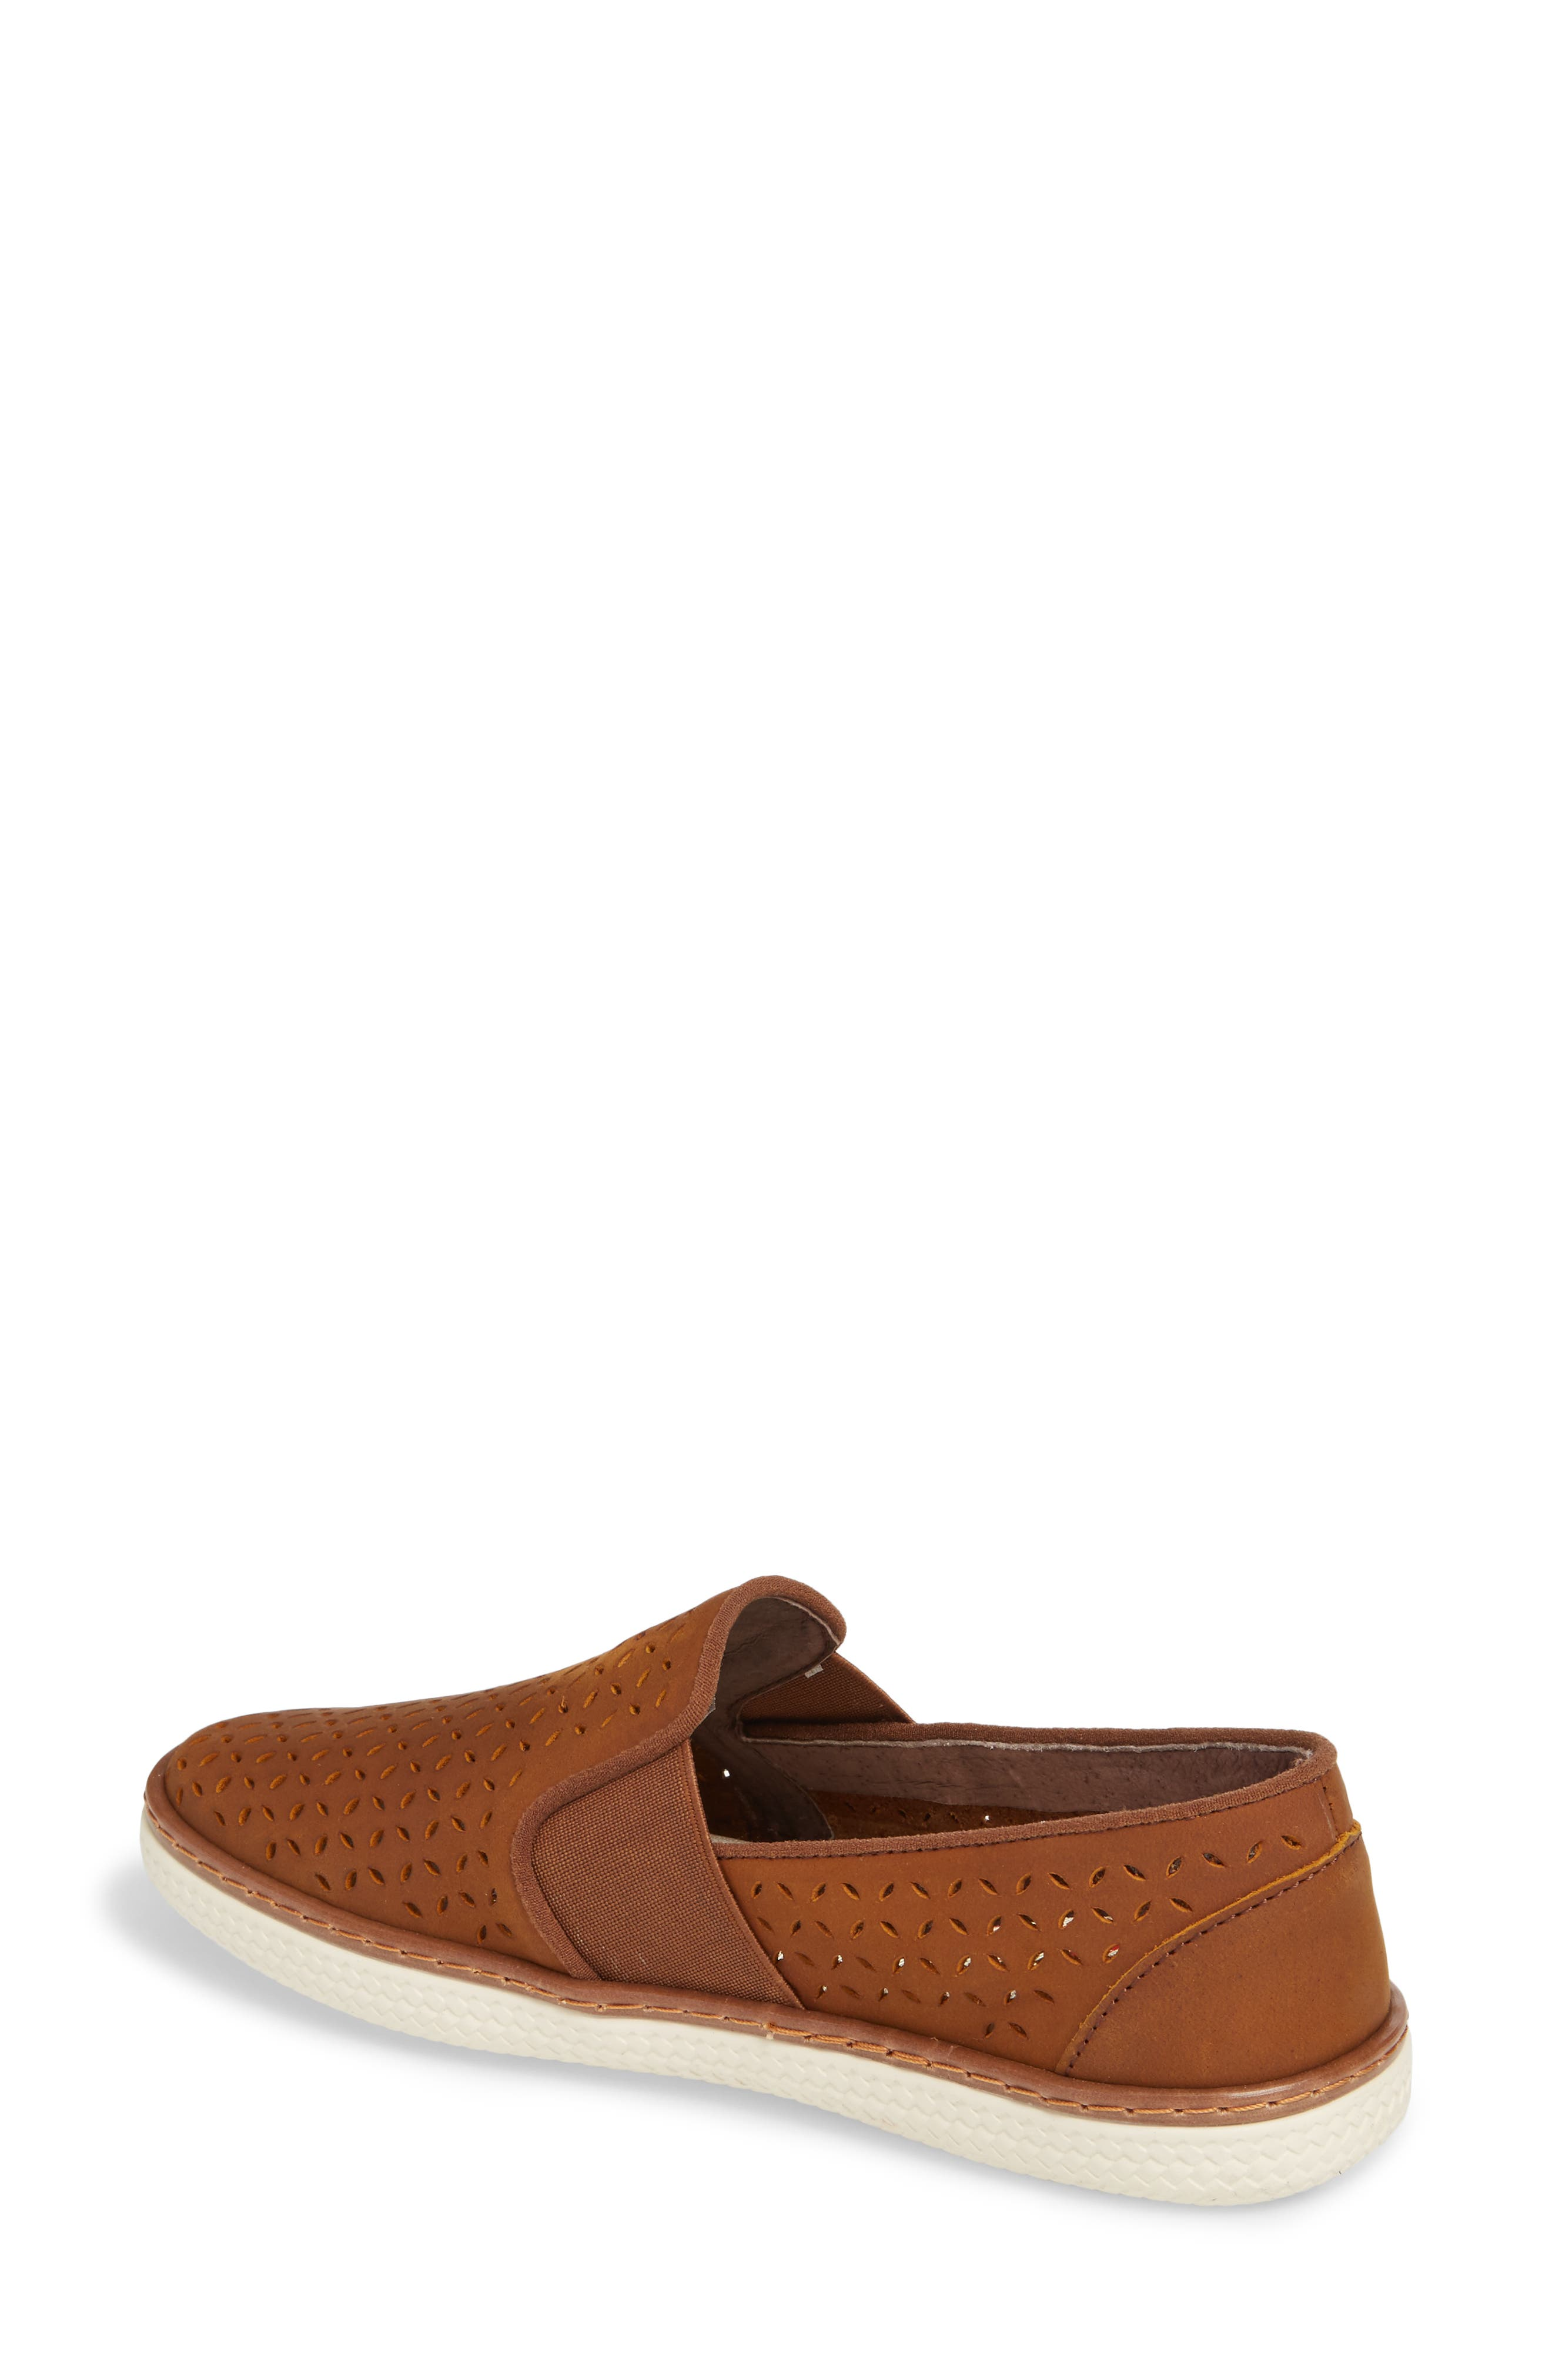 Jasper Perforated Loafer Flat,                             Alternate thumbnail 2, color,                             Brown Leather